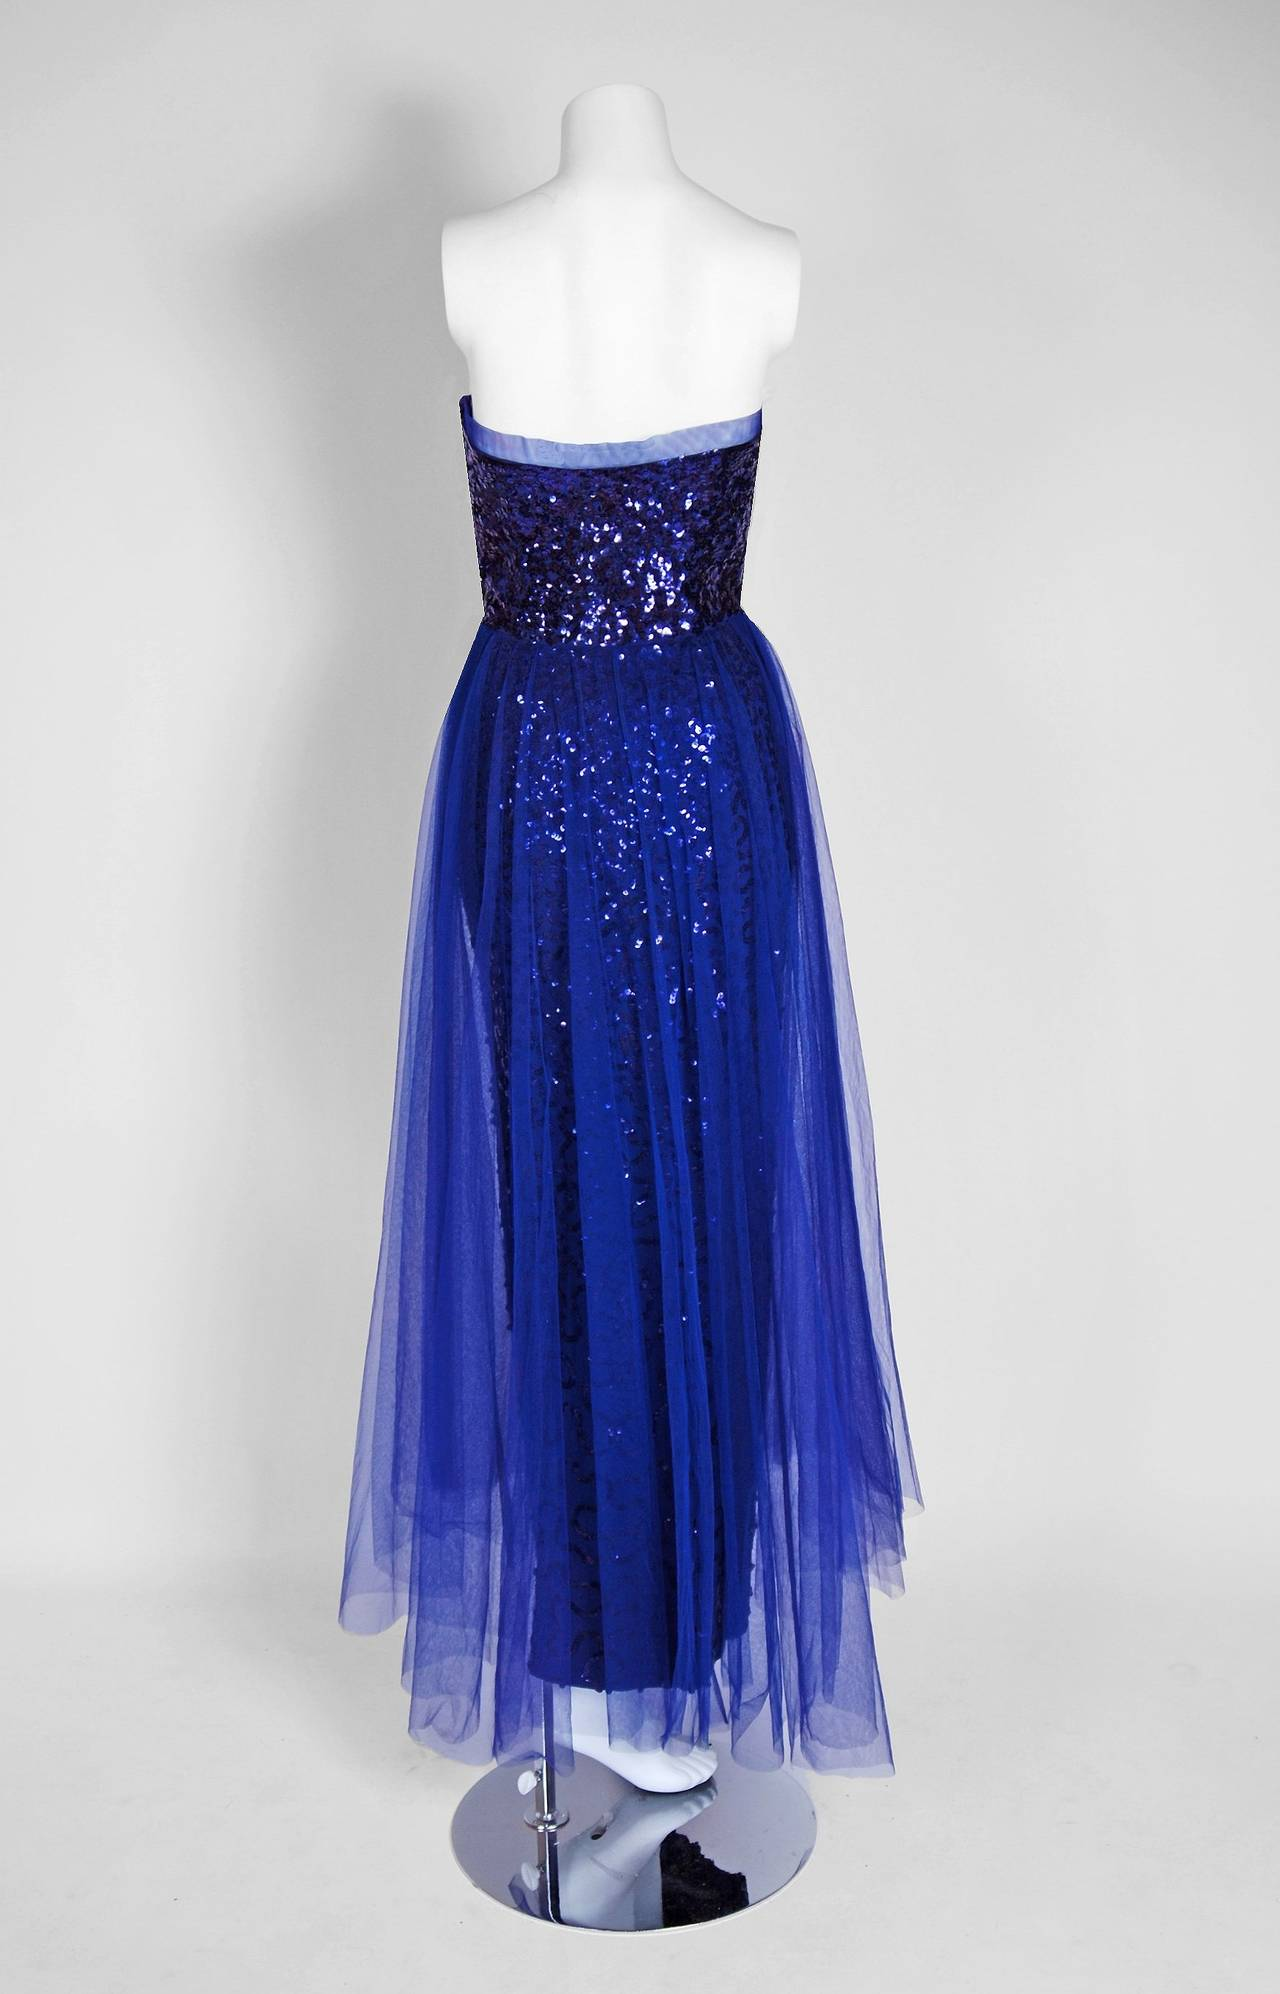 Women's 1950's Seductive Royal-Blue Sequin Rayon-Crepe Strapless Trained Evening Gown For Sale